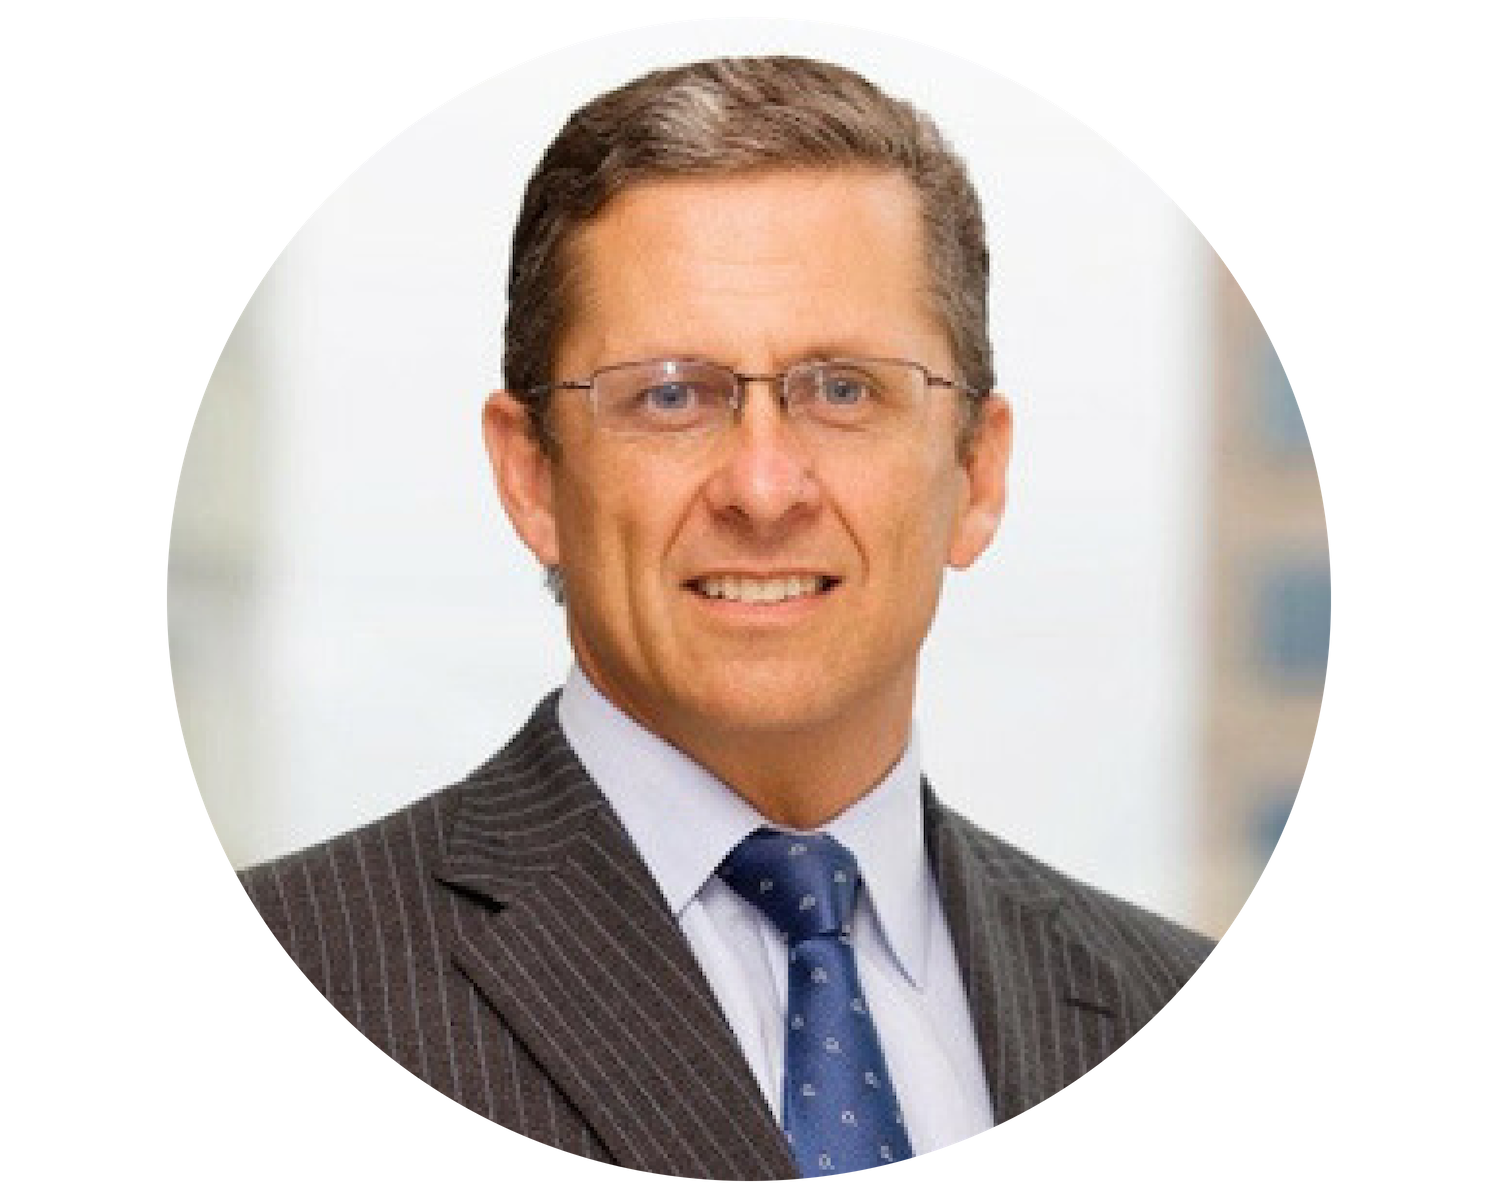 MURRAY BREWER - Director of Australia and New Zealand, T. Rowe Price